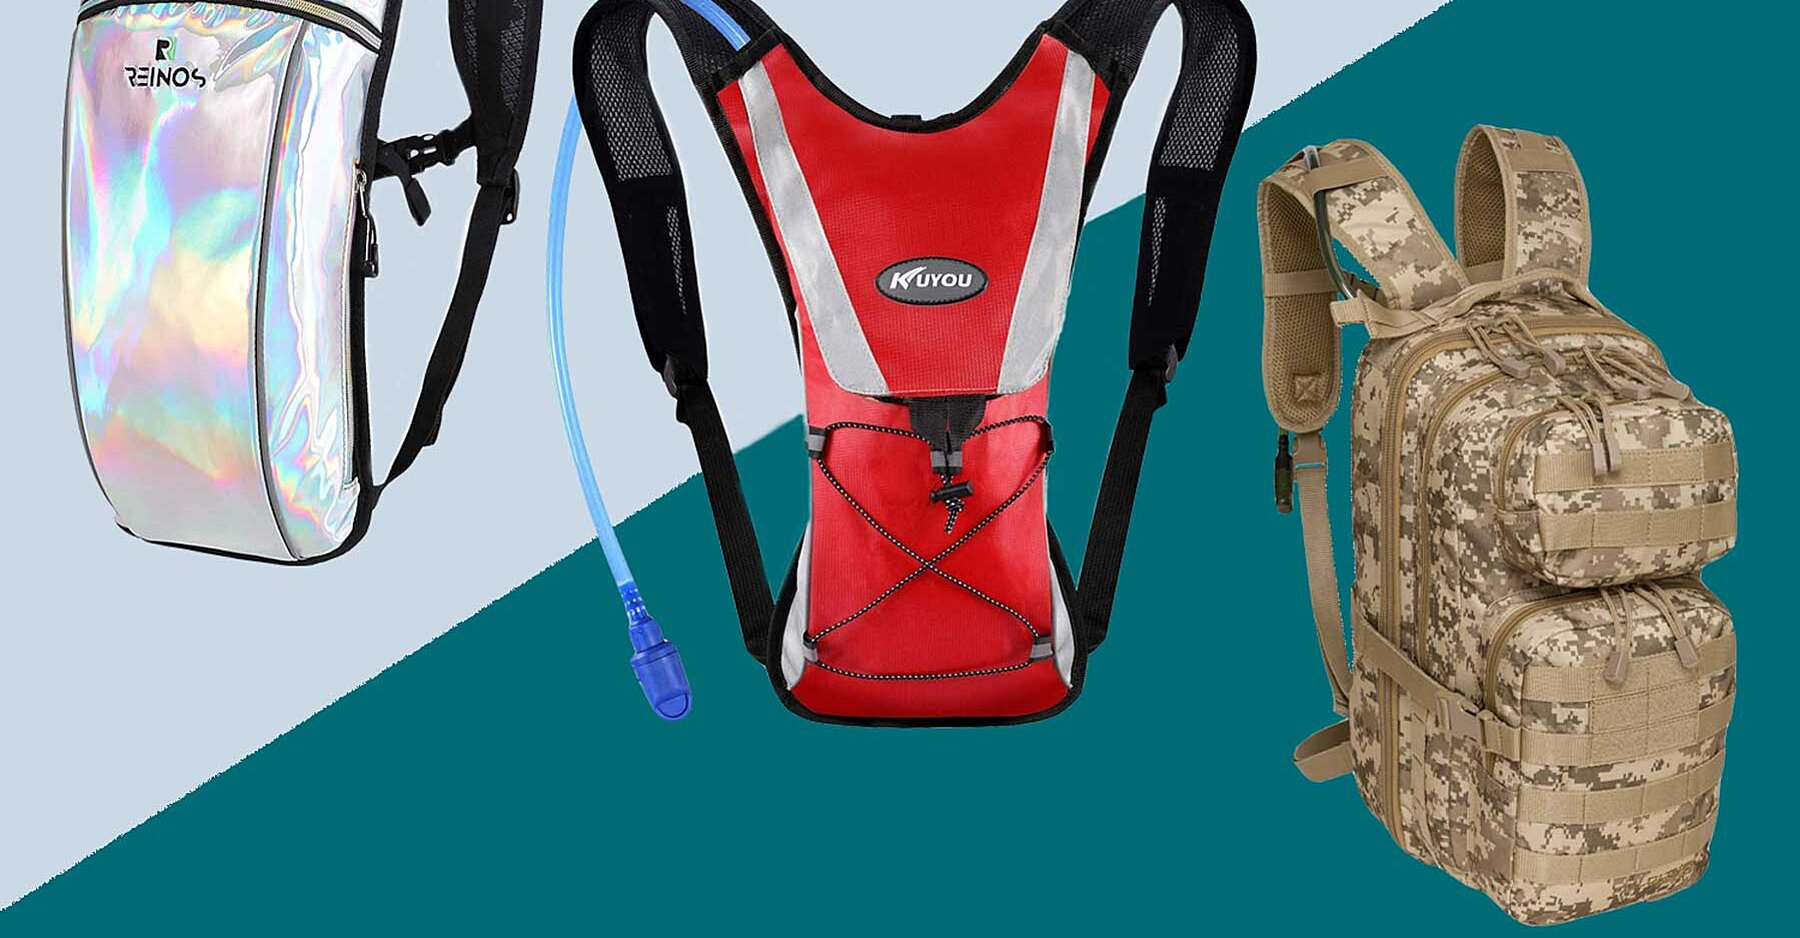 These Hands-free Hydration Packs Are Revolutionizing the Way People Experience the Outdoors